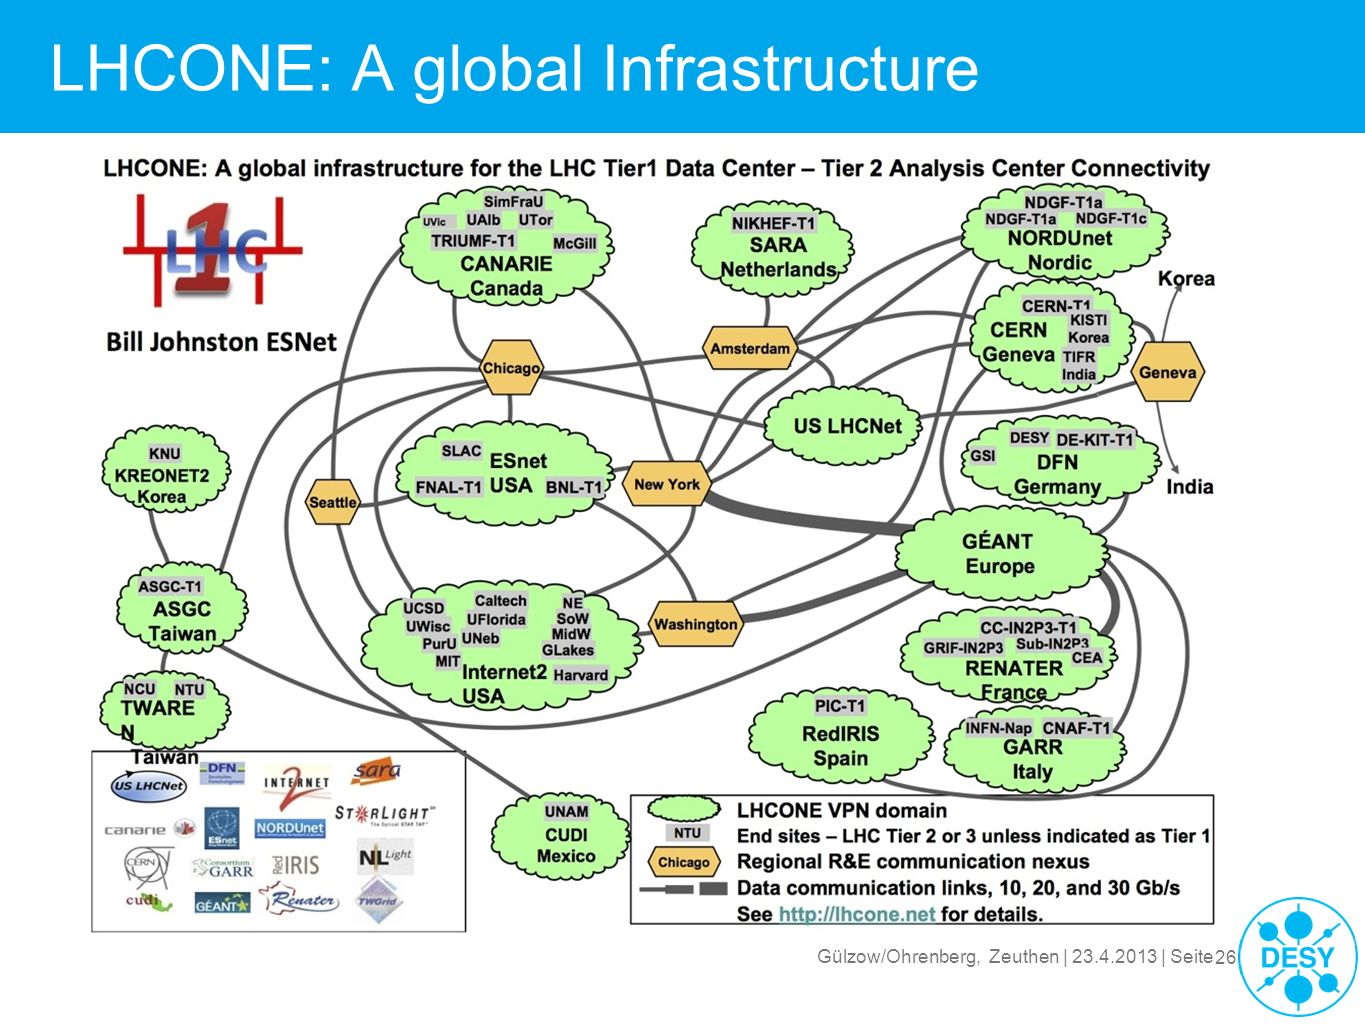 LHCONE: A global Infrastructure